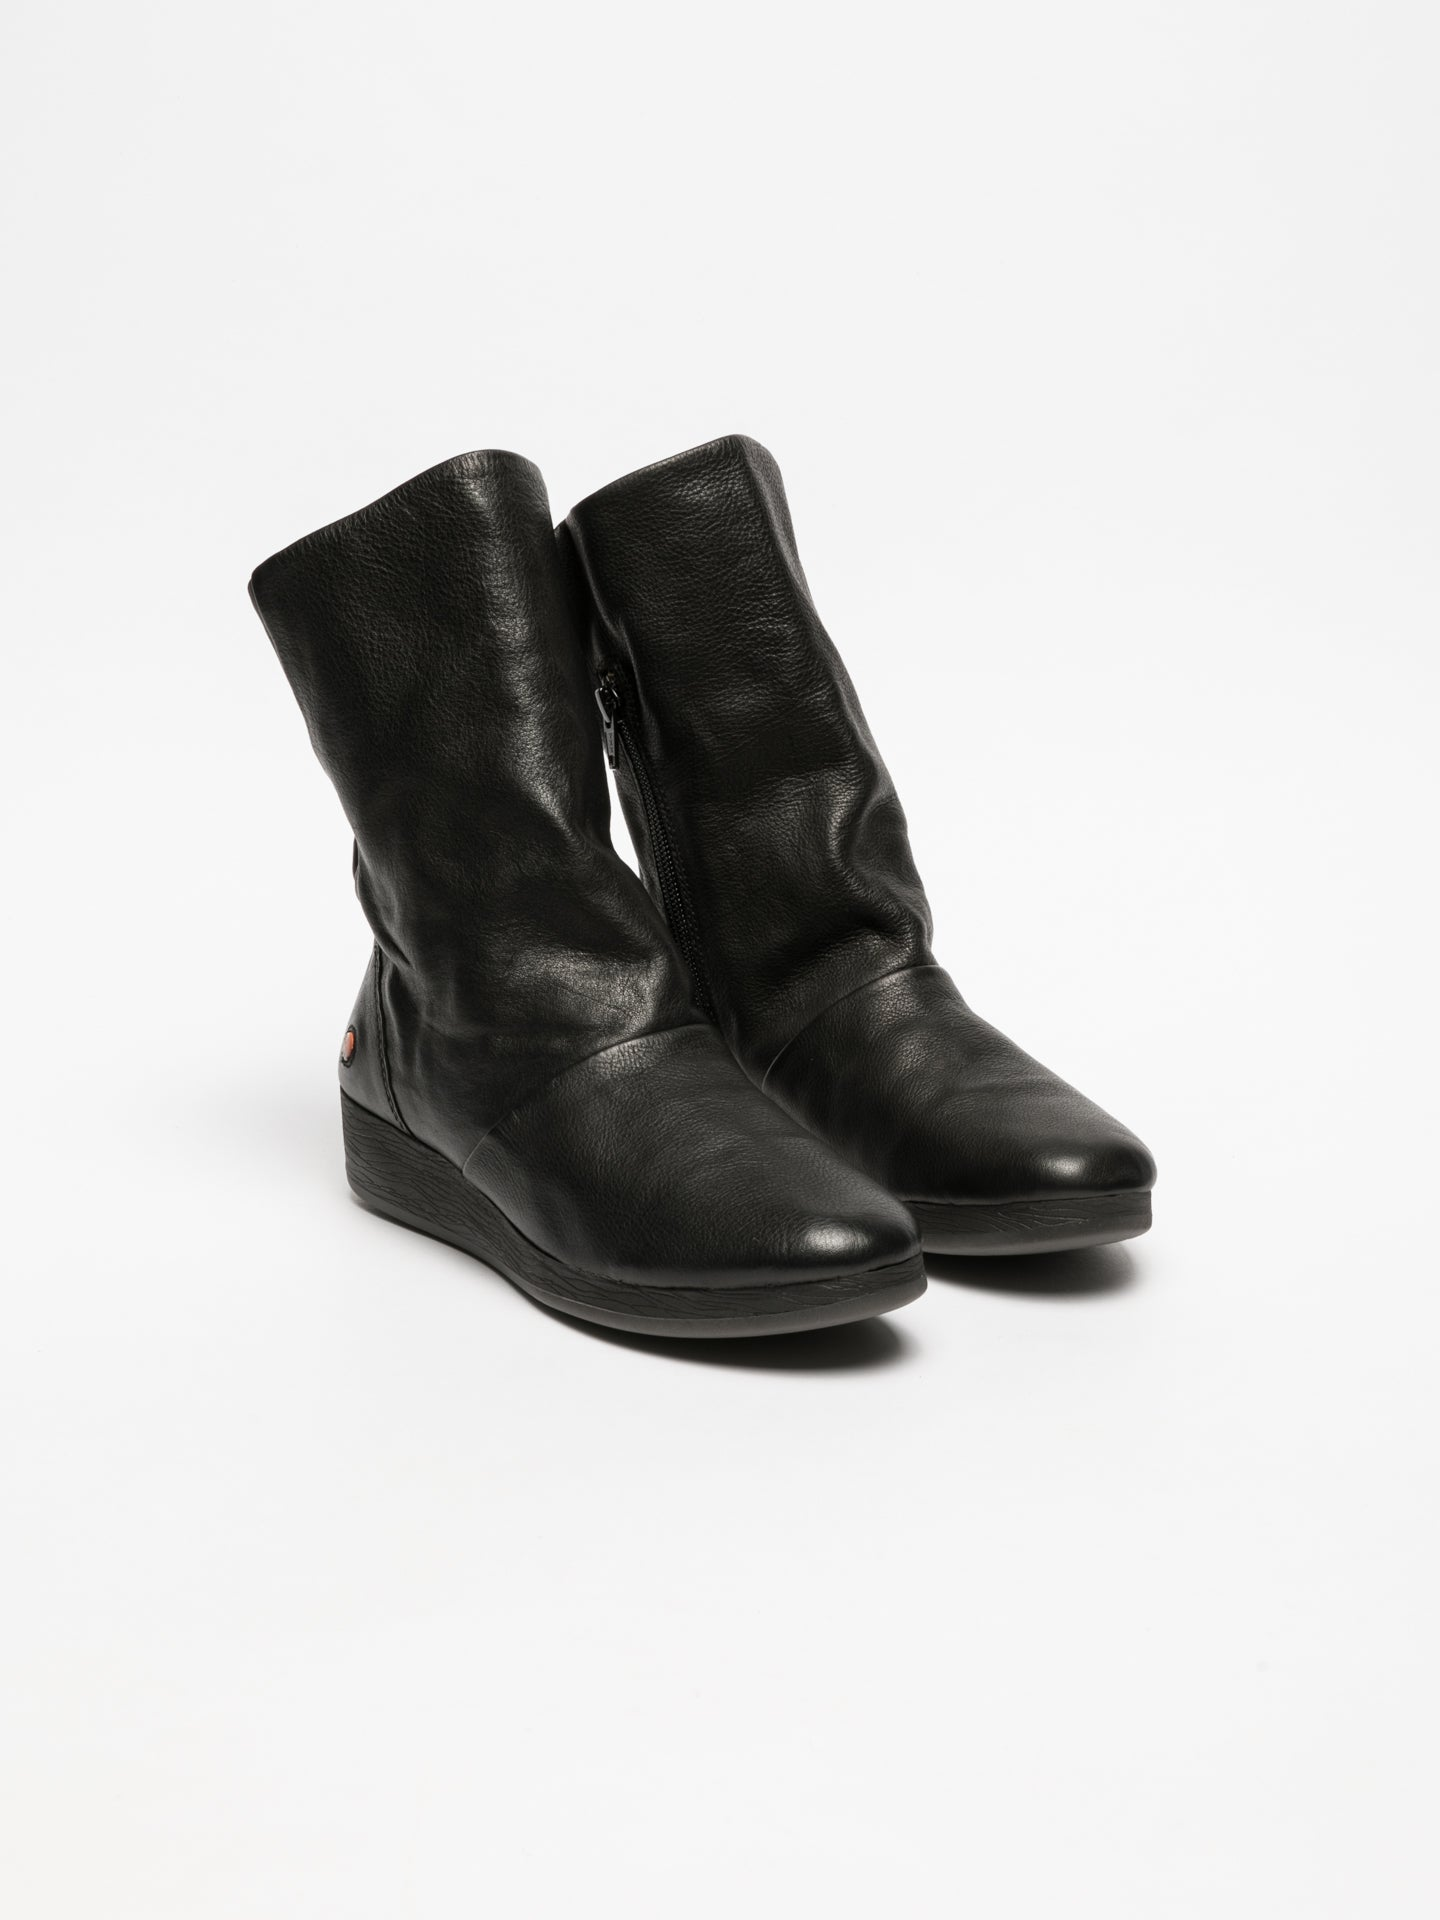 Softinos Black Wedge Ankle Boots